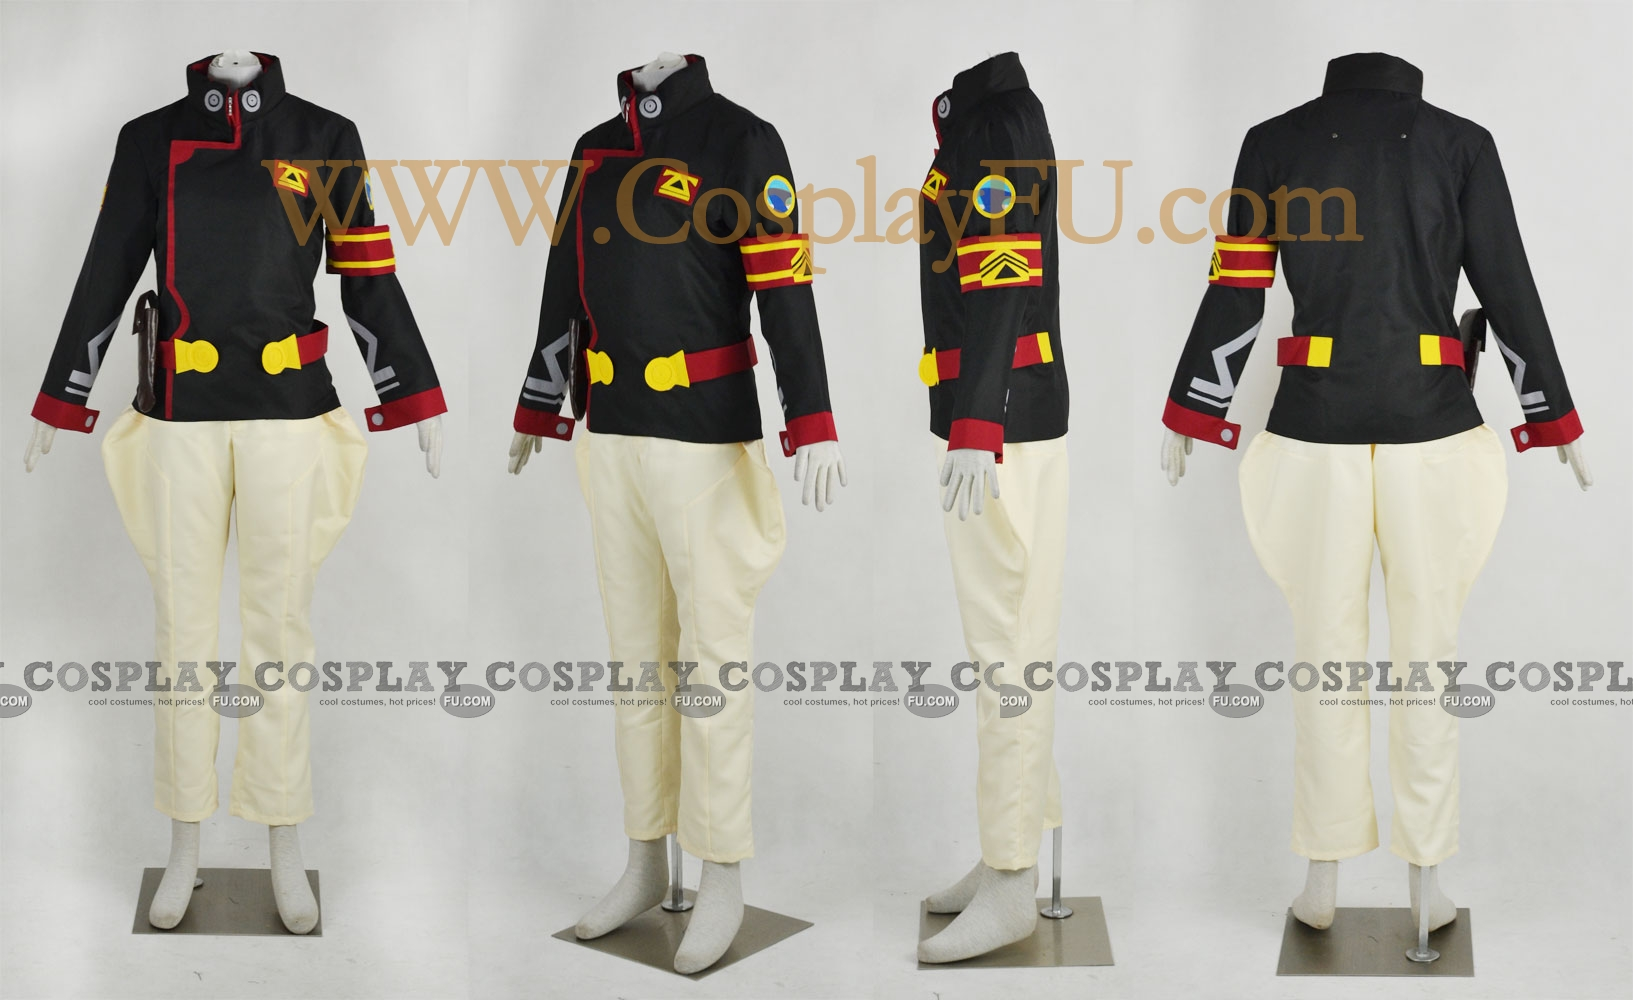 Dominic Cosplay Costume from Eureka Seven